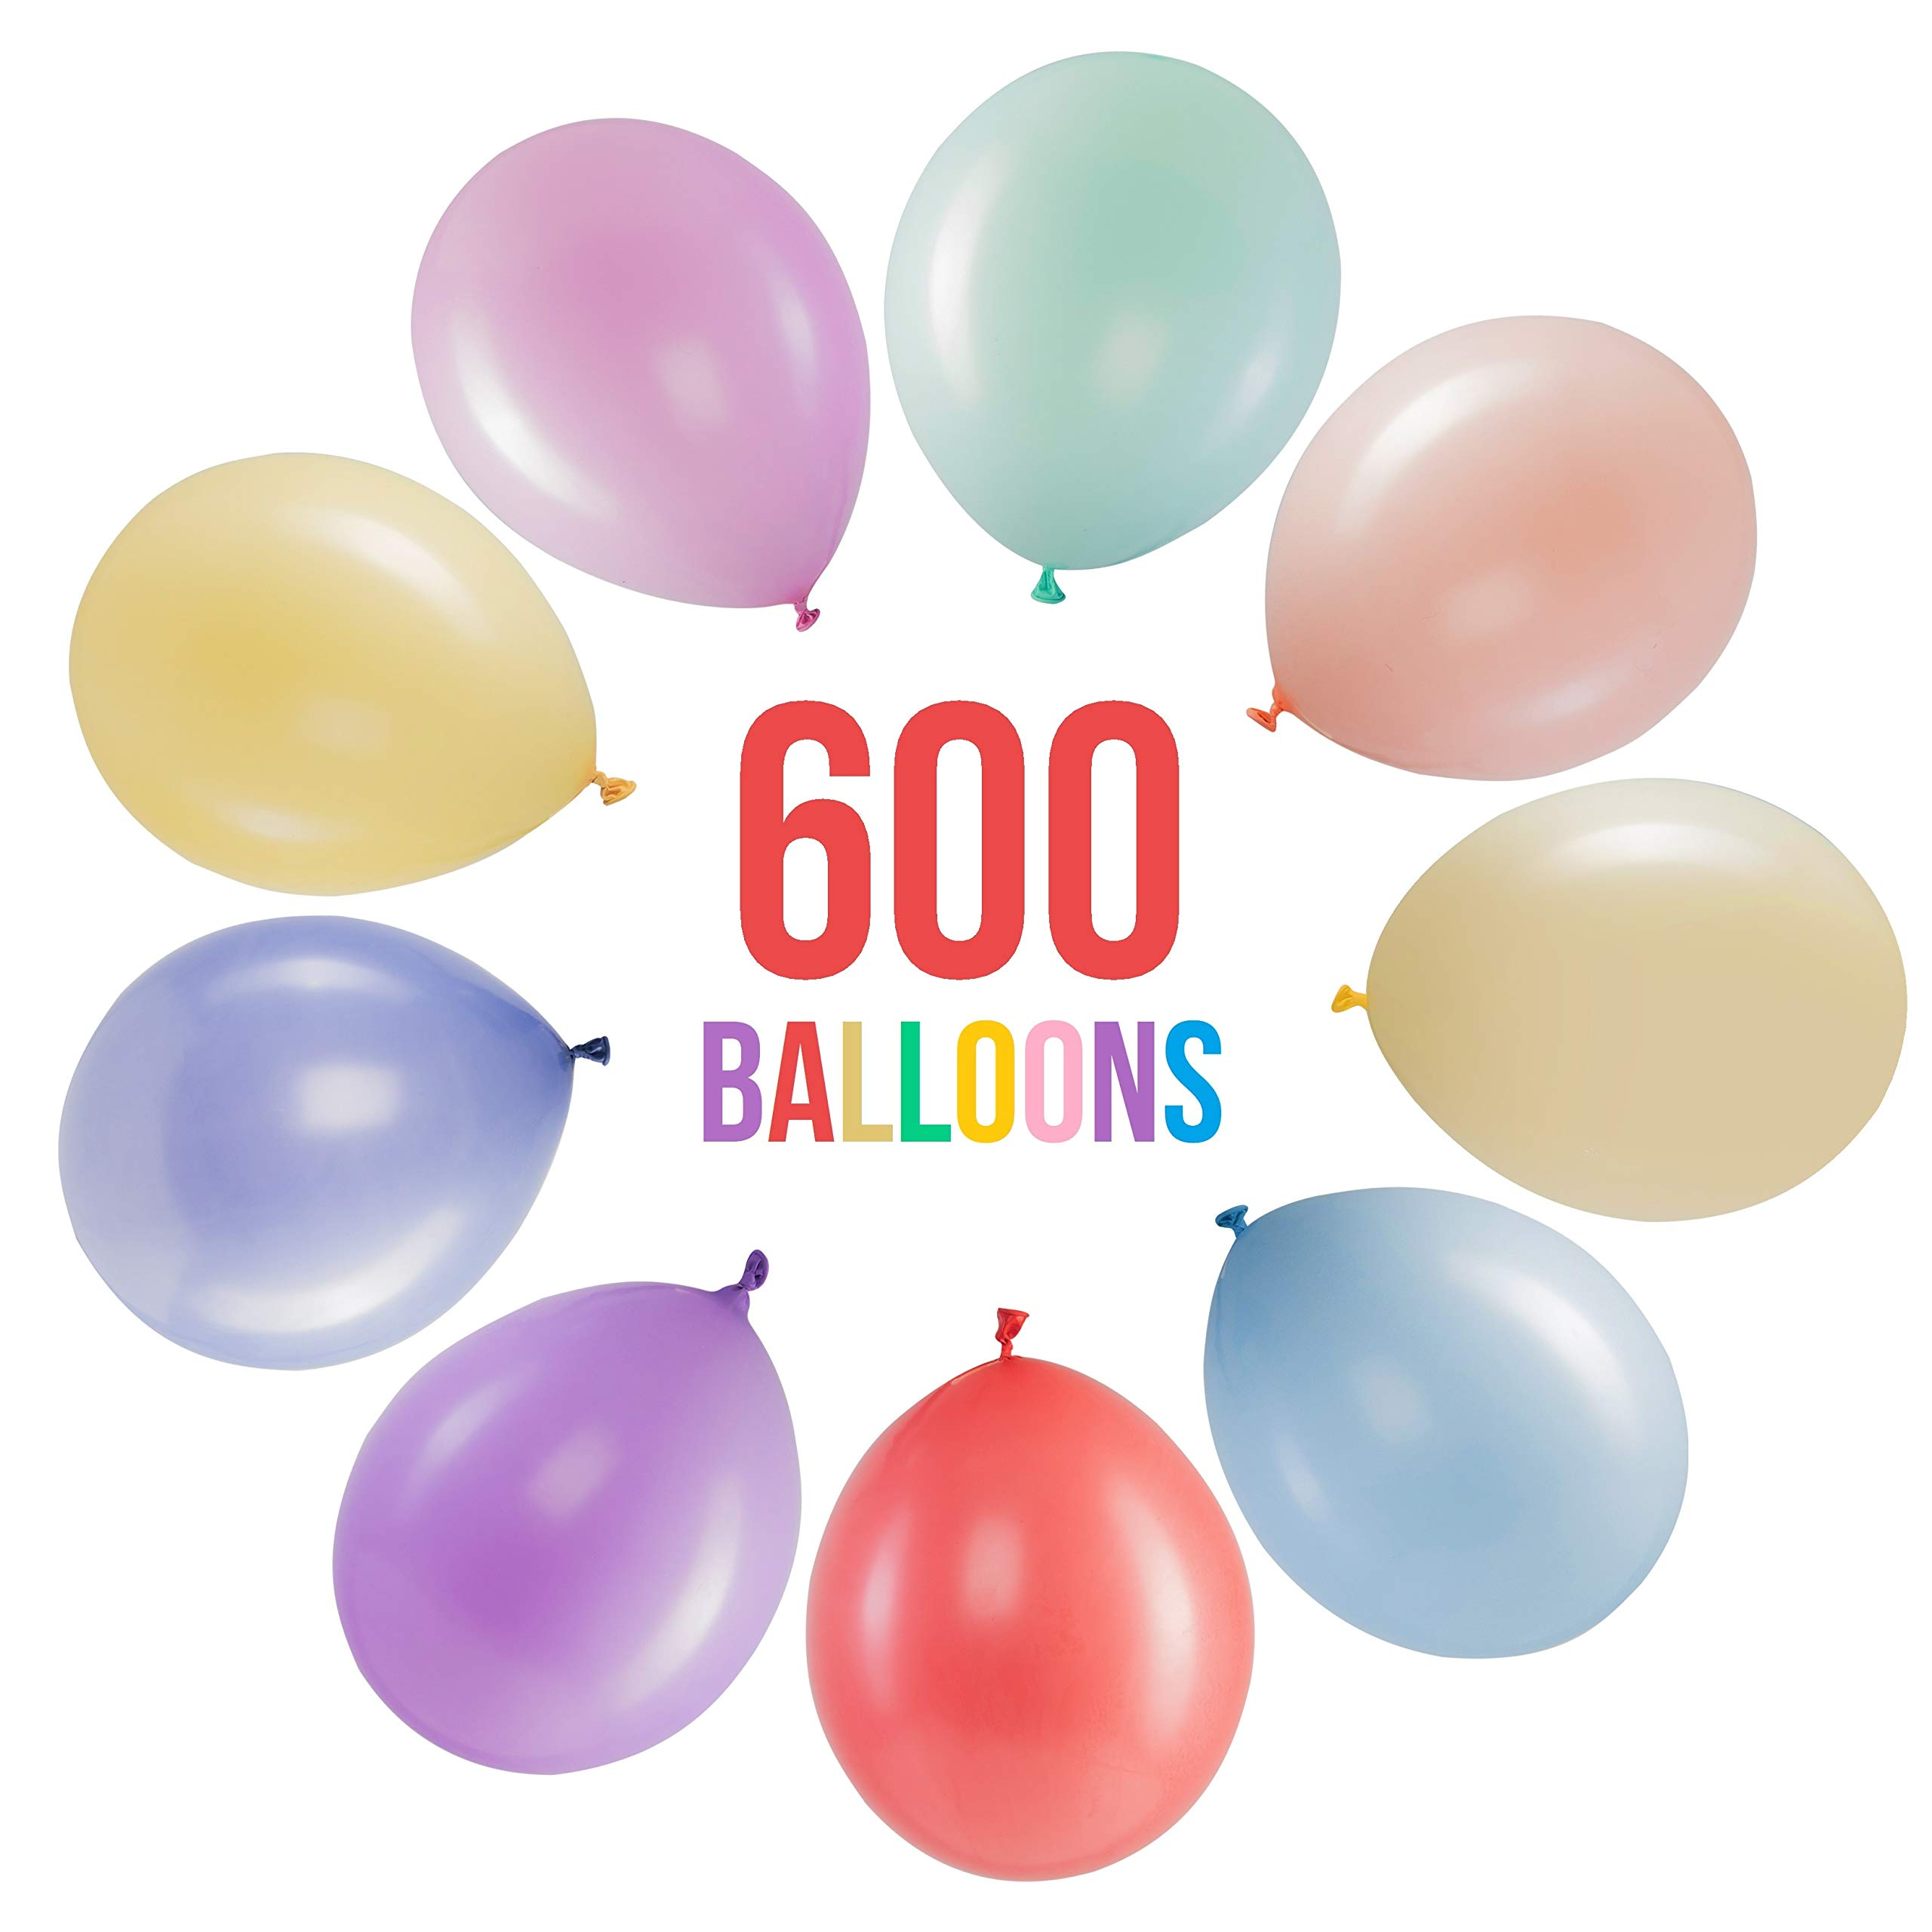 Prextex 600 Pastel Party Balloons 12 Inch 10 Assorted Rainbow Candy Colors - Bulk Pack of Strong Latex Macaron Balloons for Party Decorations, Birthday Parties Supplies or Arch Decor - Helium Quality